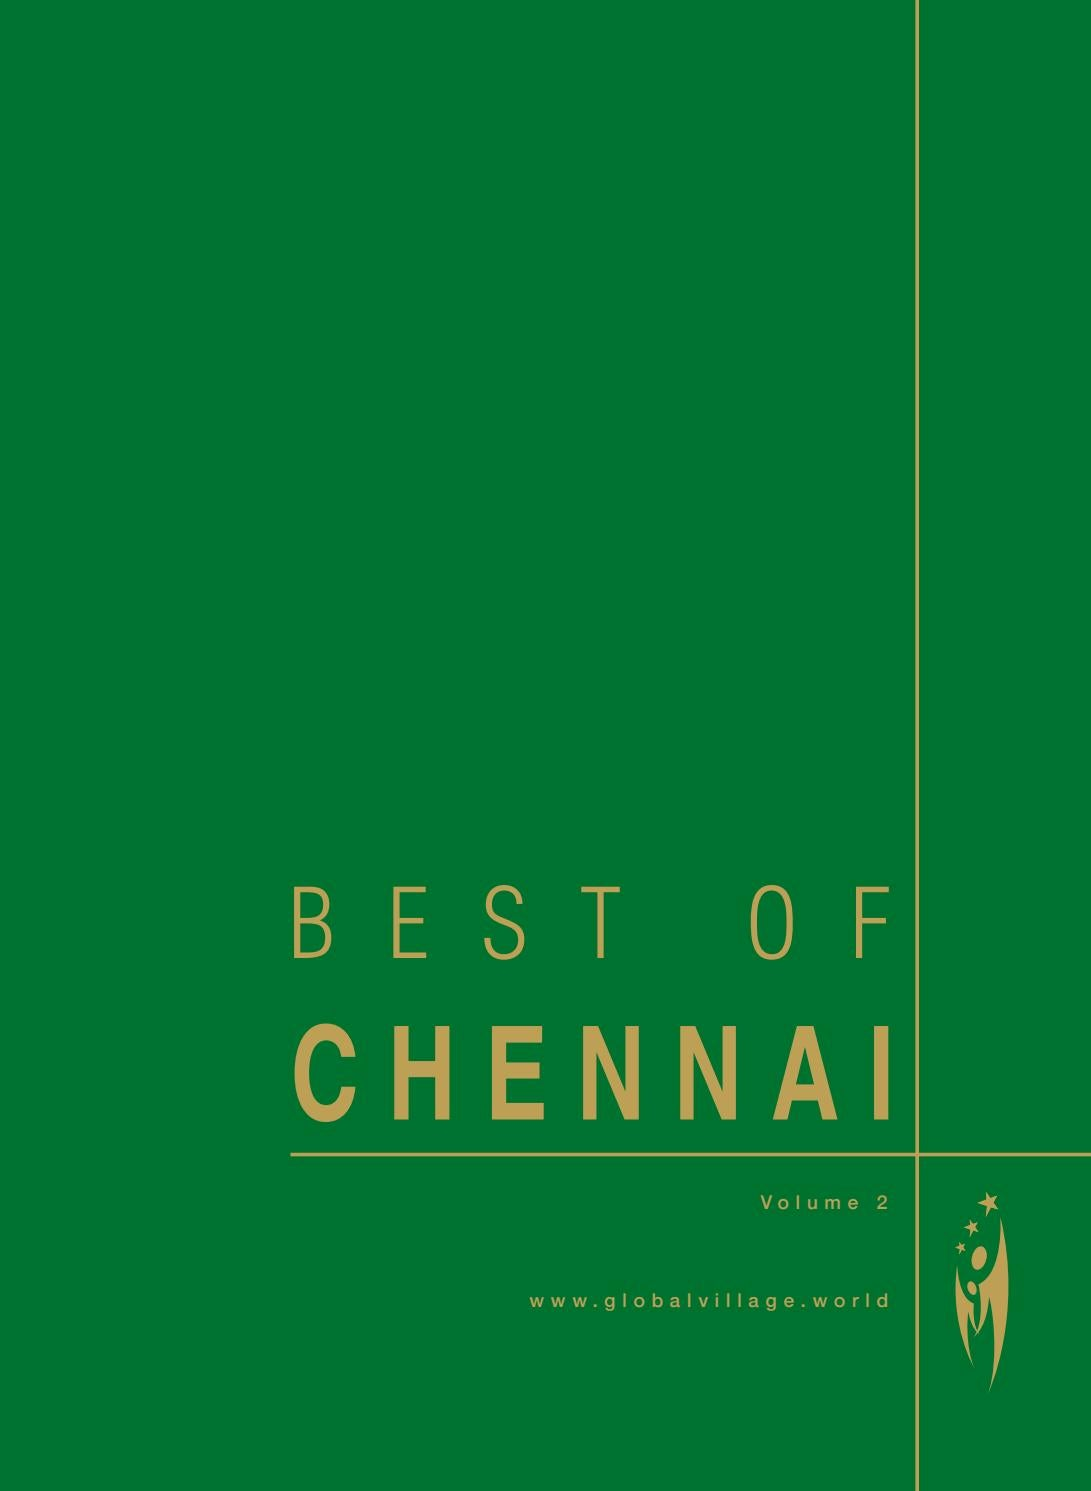 f99aa566f26d5 Best of Chennai Volume 2 by Raintree Media - issuu